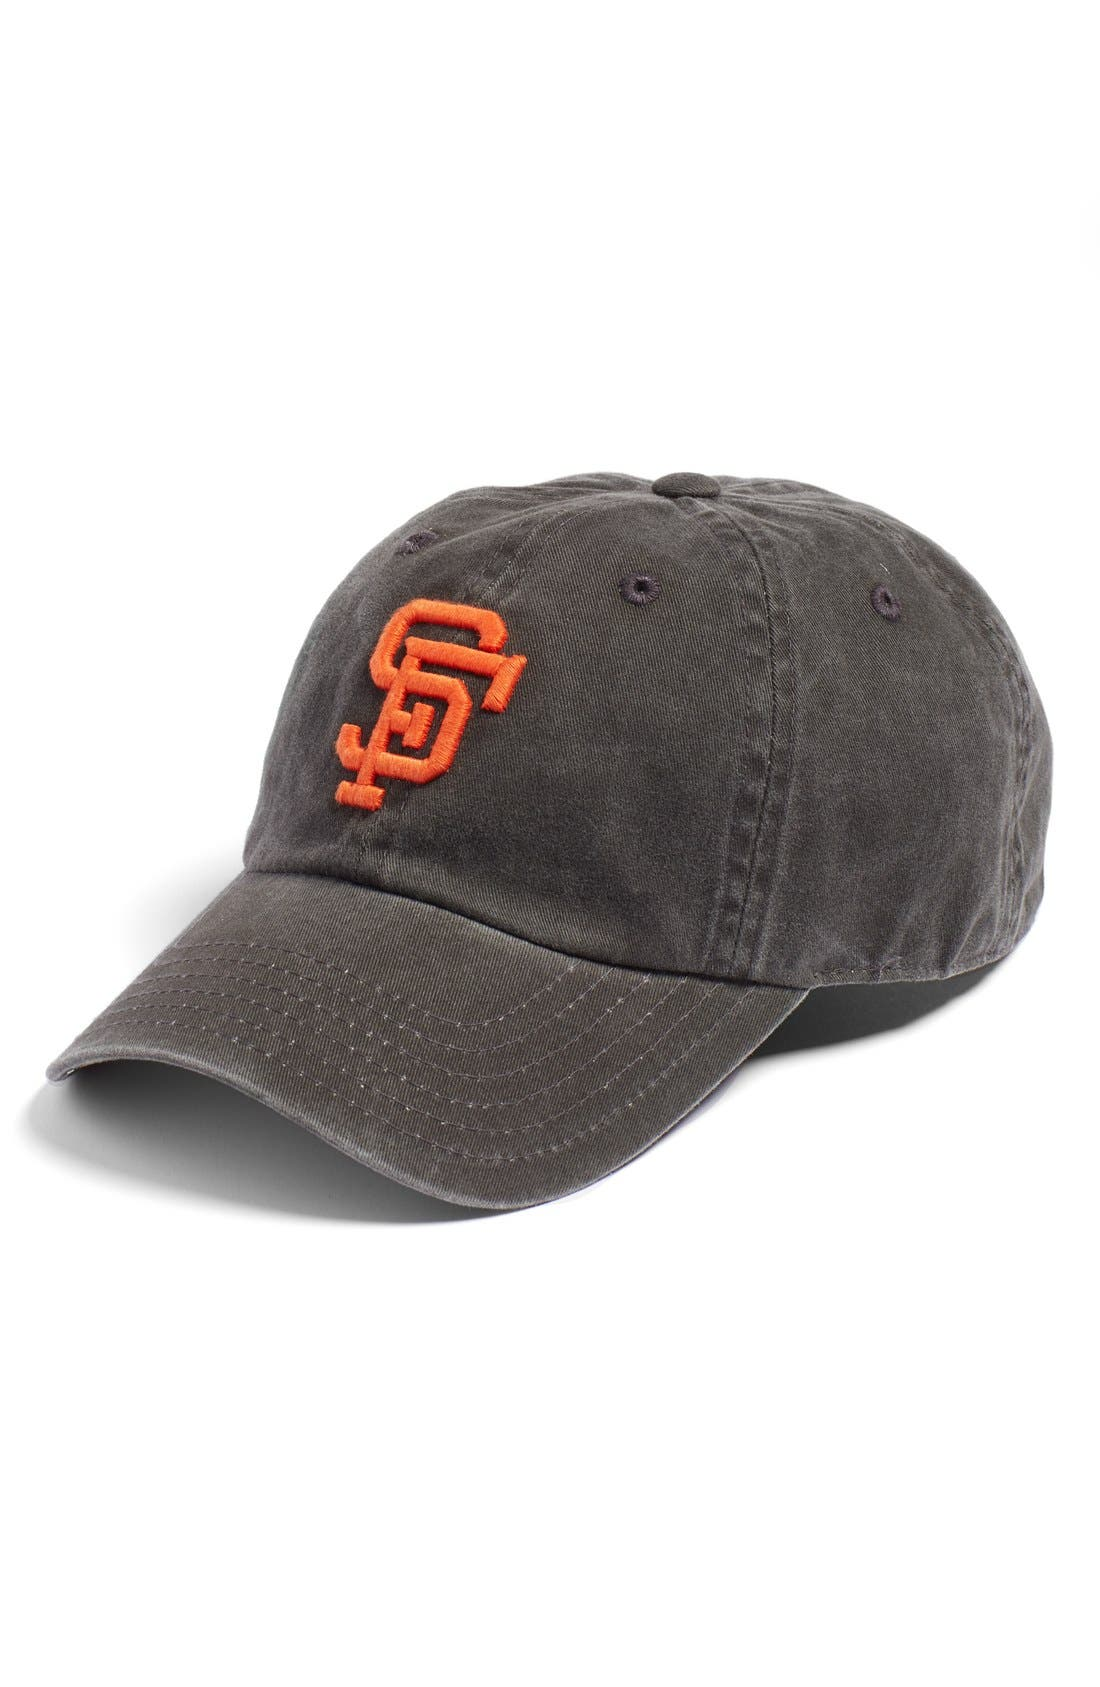 Alternate Image 1 Selected - American Needle New Raglan San Francisco Giants Baseball Cap